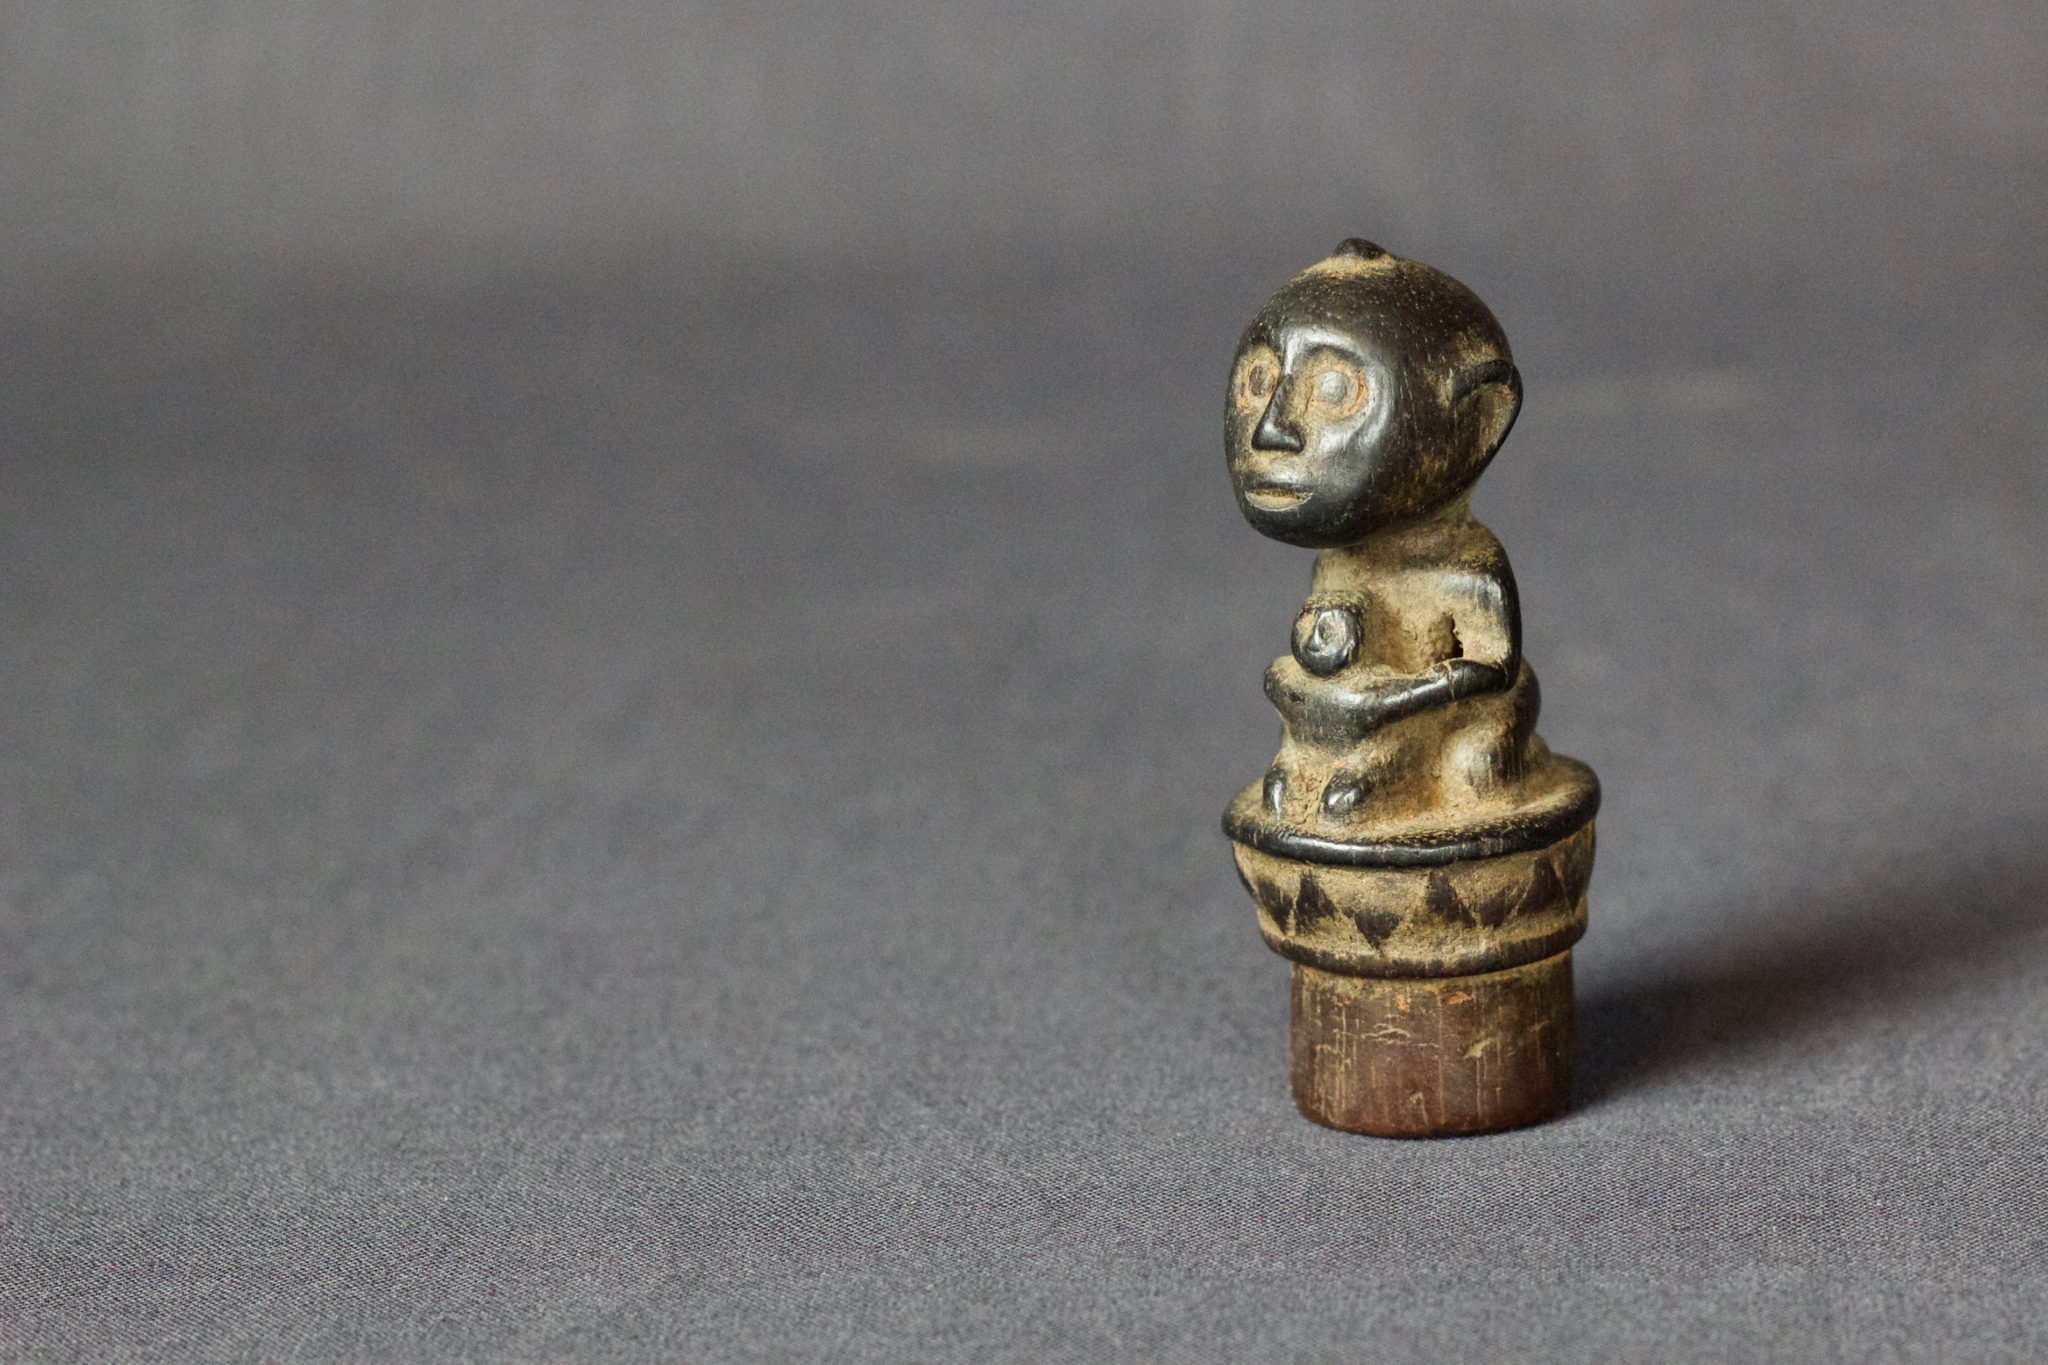 "Shaman Magic Medicine Bottle Stopper, East Sumba Island, Lesser Sunda Islands, Indonesia Mid 19th c, Wood, patinated with use and age. Talisman figure with child, used empower the healing medicine in the bottle. 3"" x 1 ¼"" x 1 ¼"", $80."